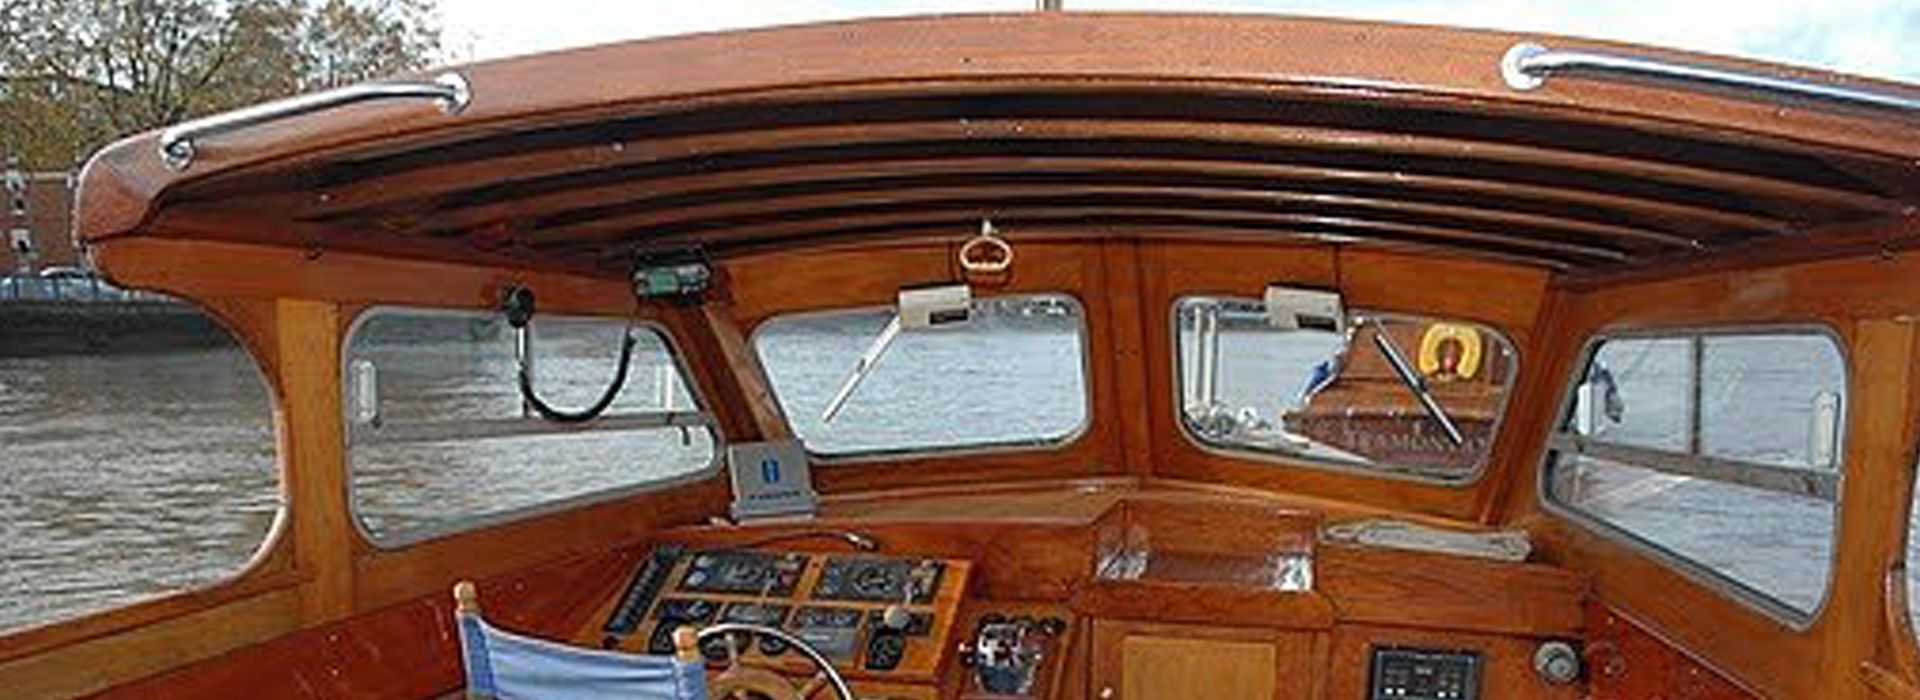 Autumn Breeze Boat - Thames Boat Hire London